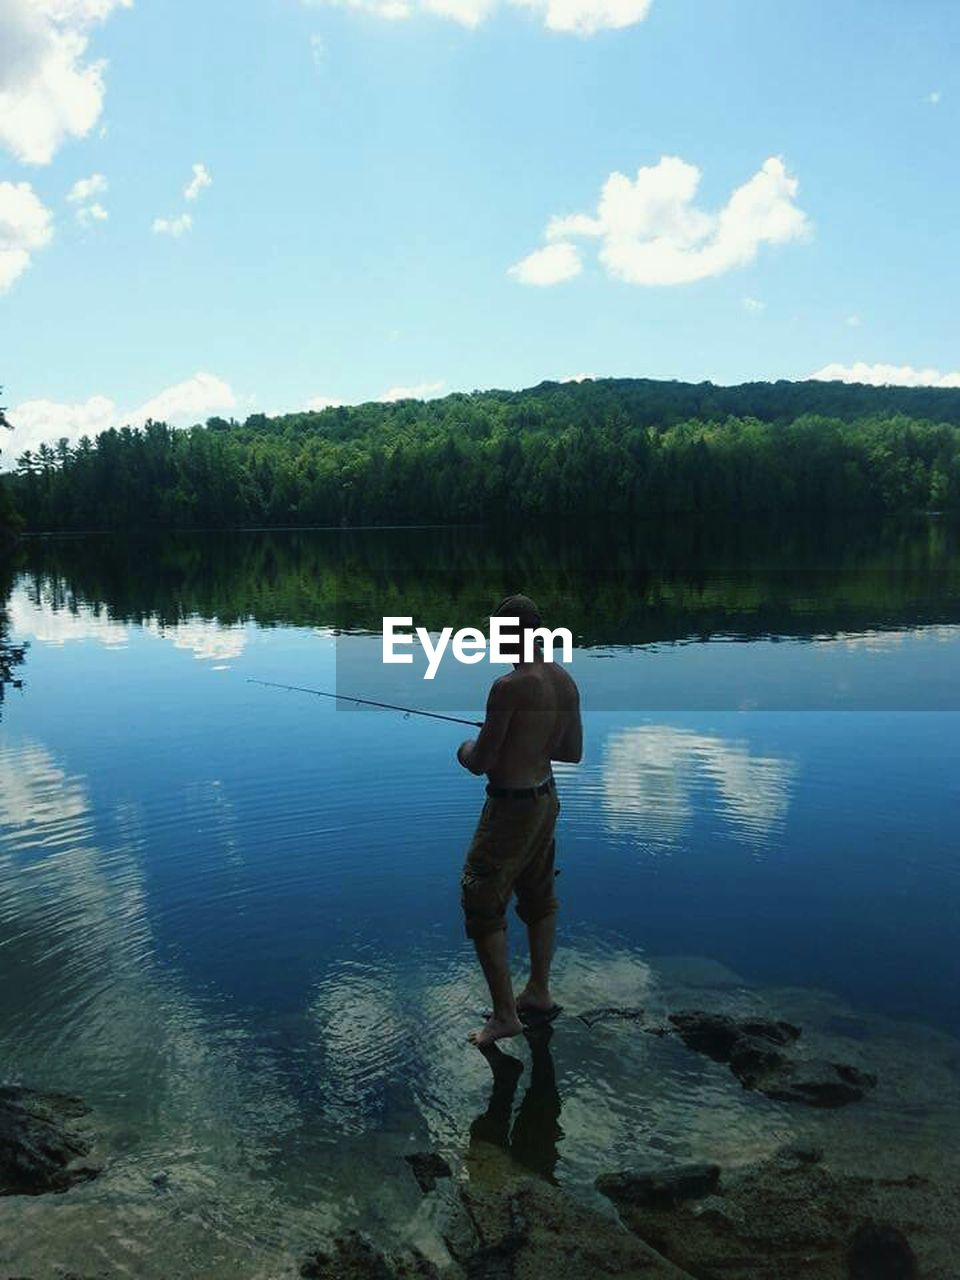 water, full length, nature, one person, sky, standing, real people, tree, lake, leisure activity, shirtless, rear view, beauty in nature, reflection, day, outdoors, scenics, tranquility, lifestyles, growth, men, ankle deep in water, people